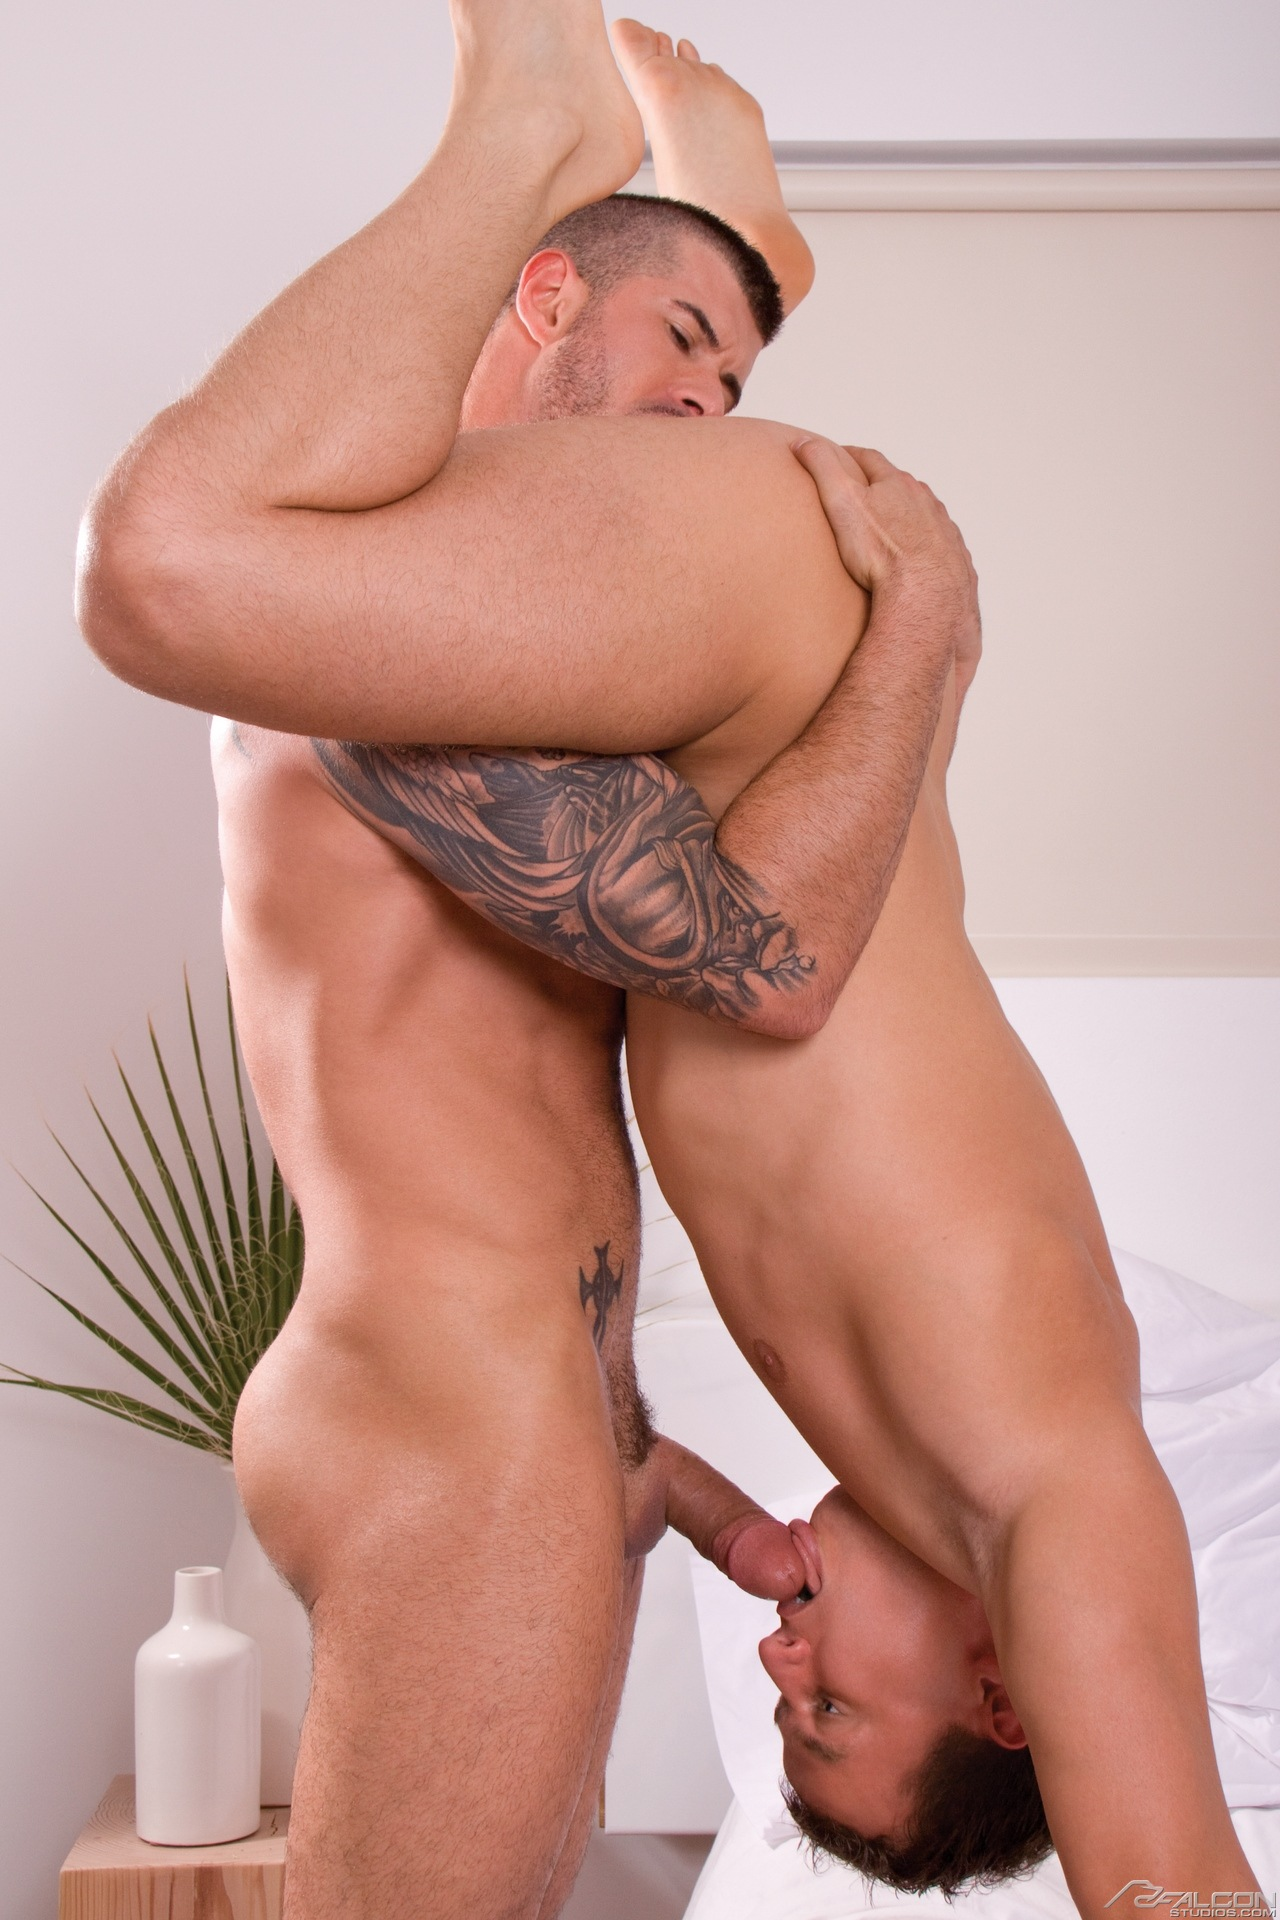 oral sex on man standing position